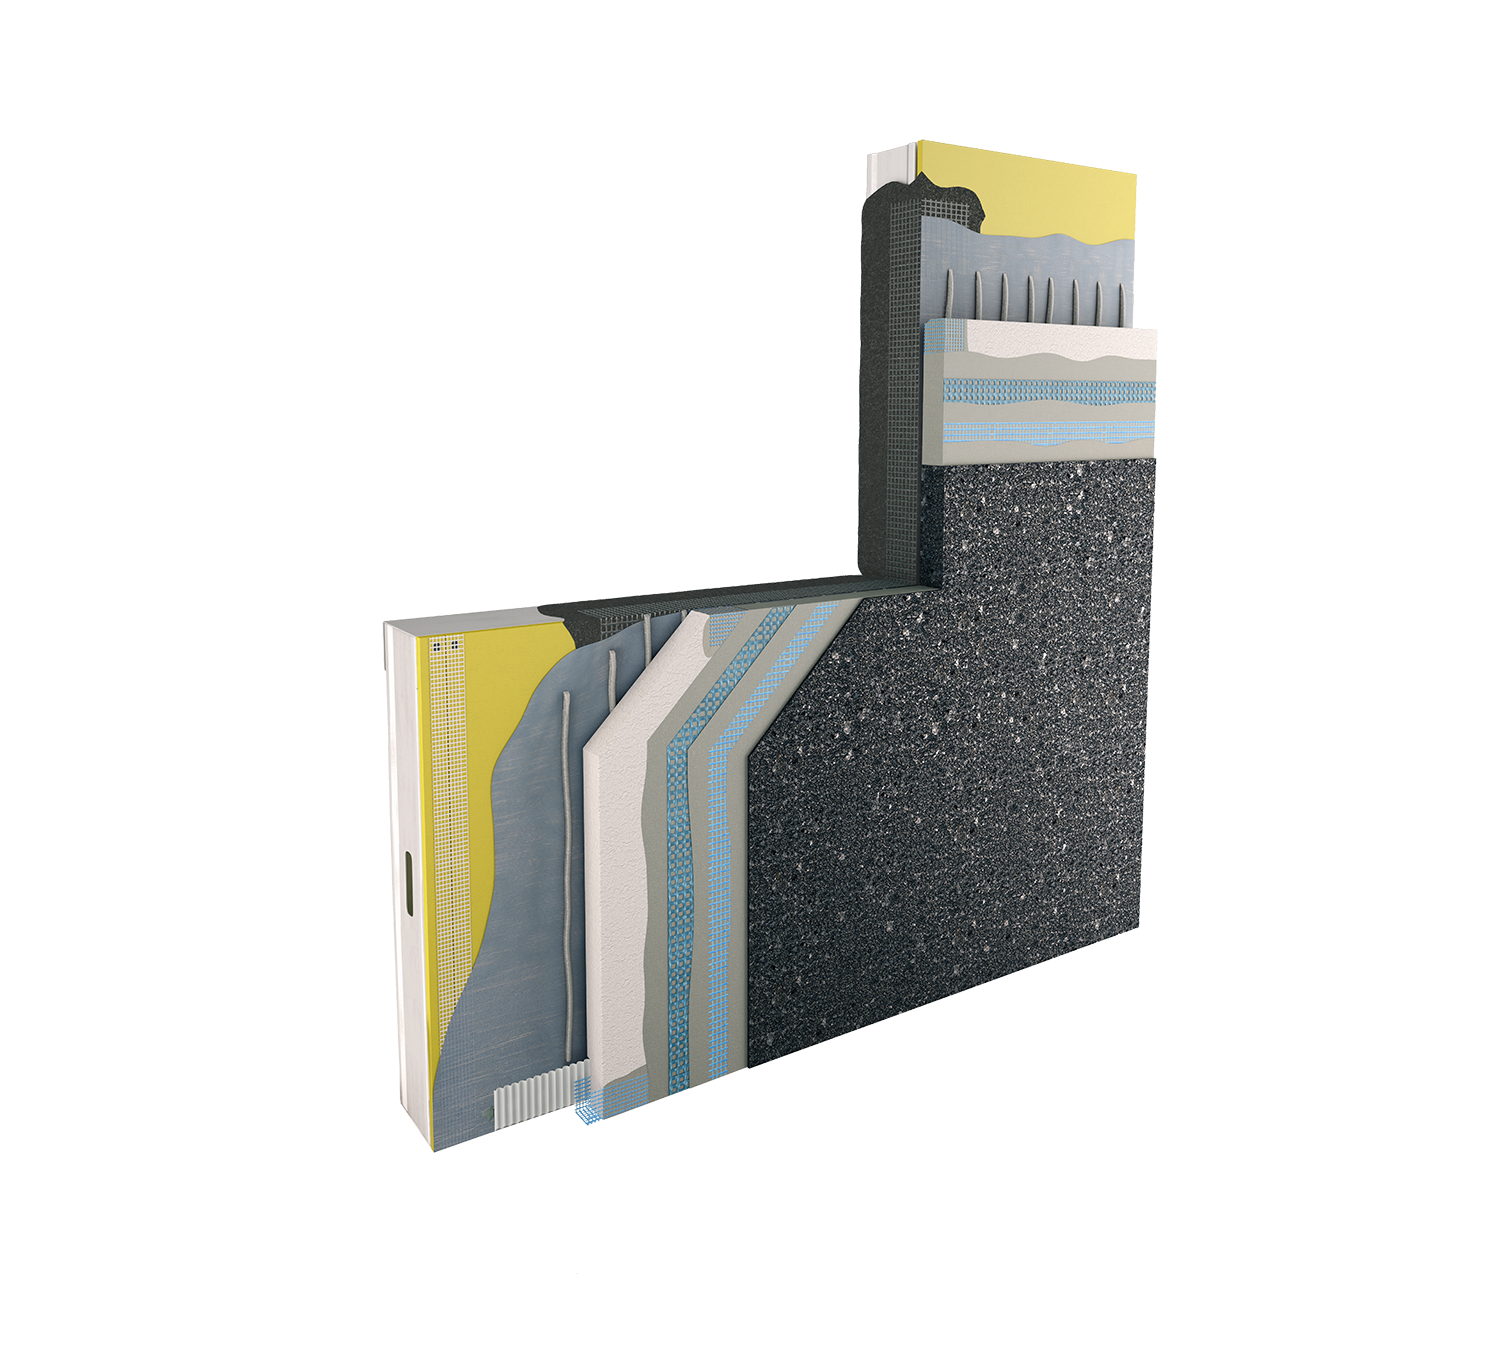 Lymestone dryvit Direct applied exterior finish system